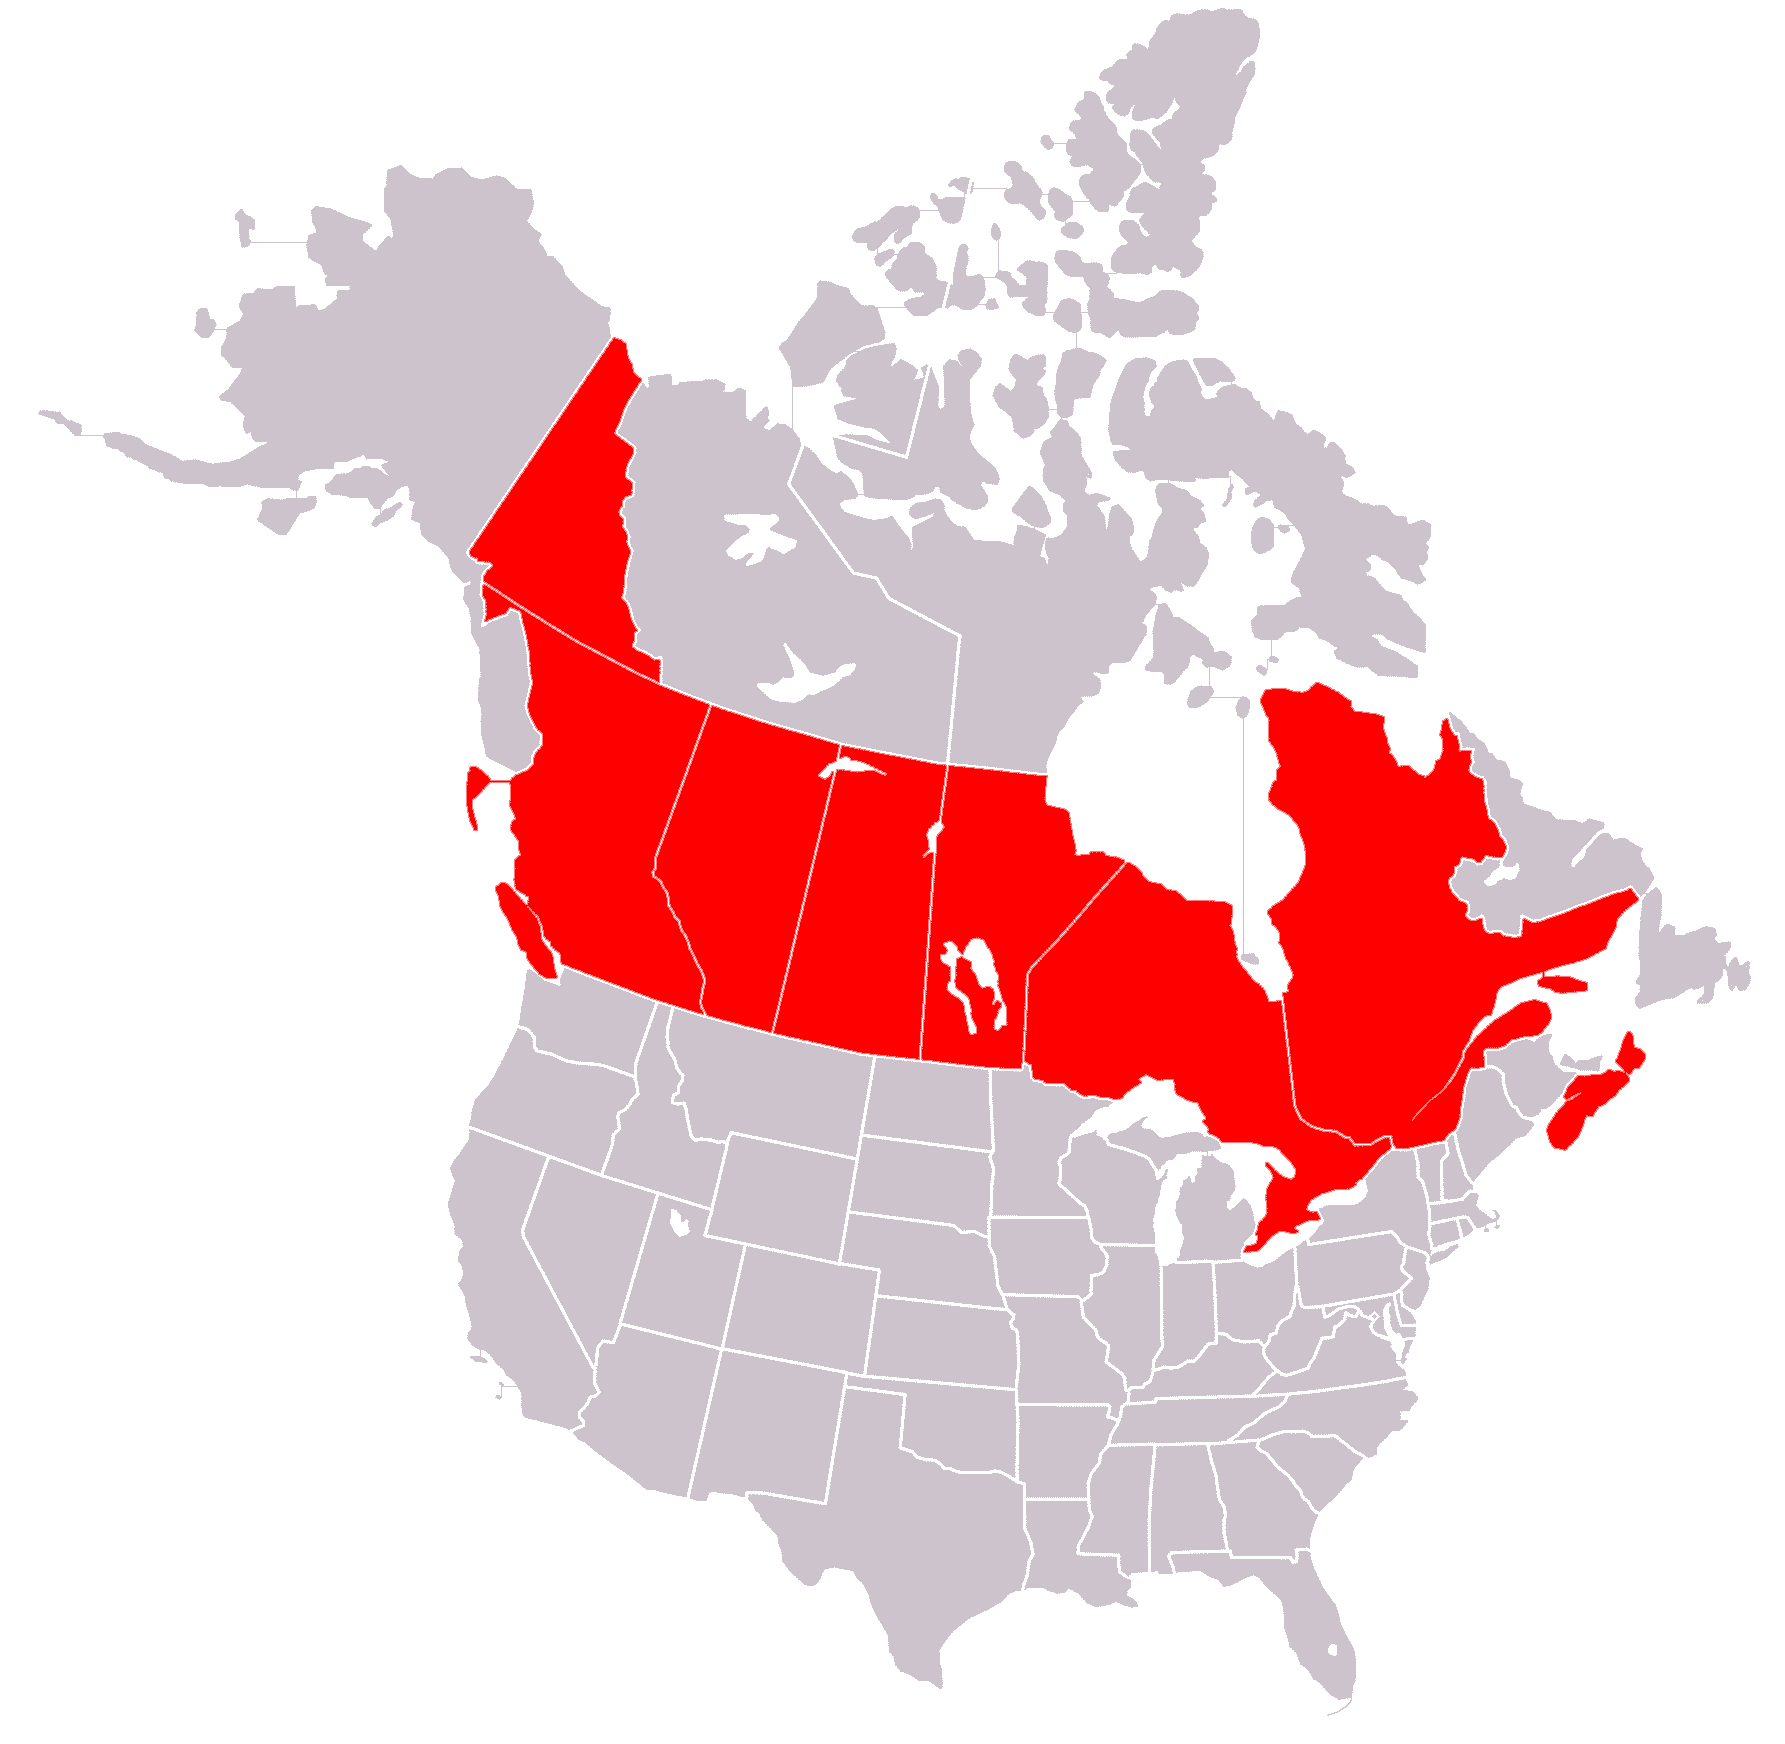 FileBlankMapUSAstatesCanadaprovinces Highlighting OCA - Blank us canada map